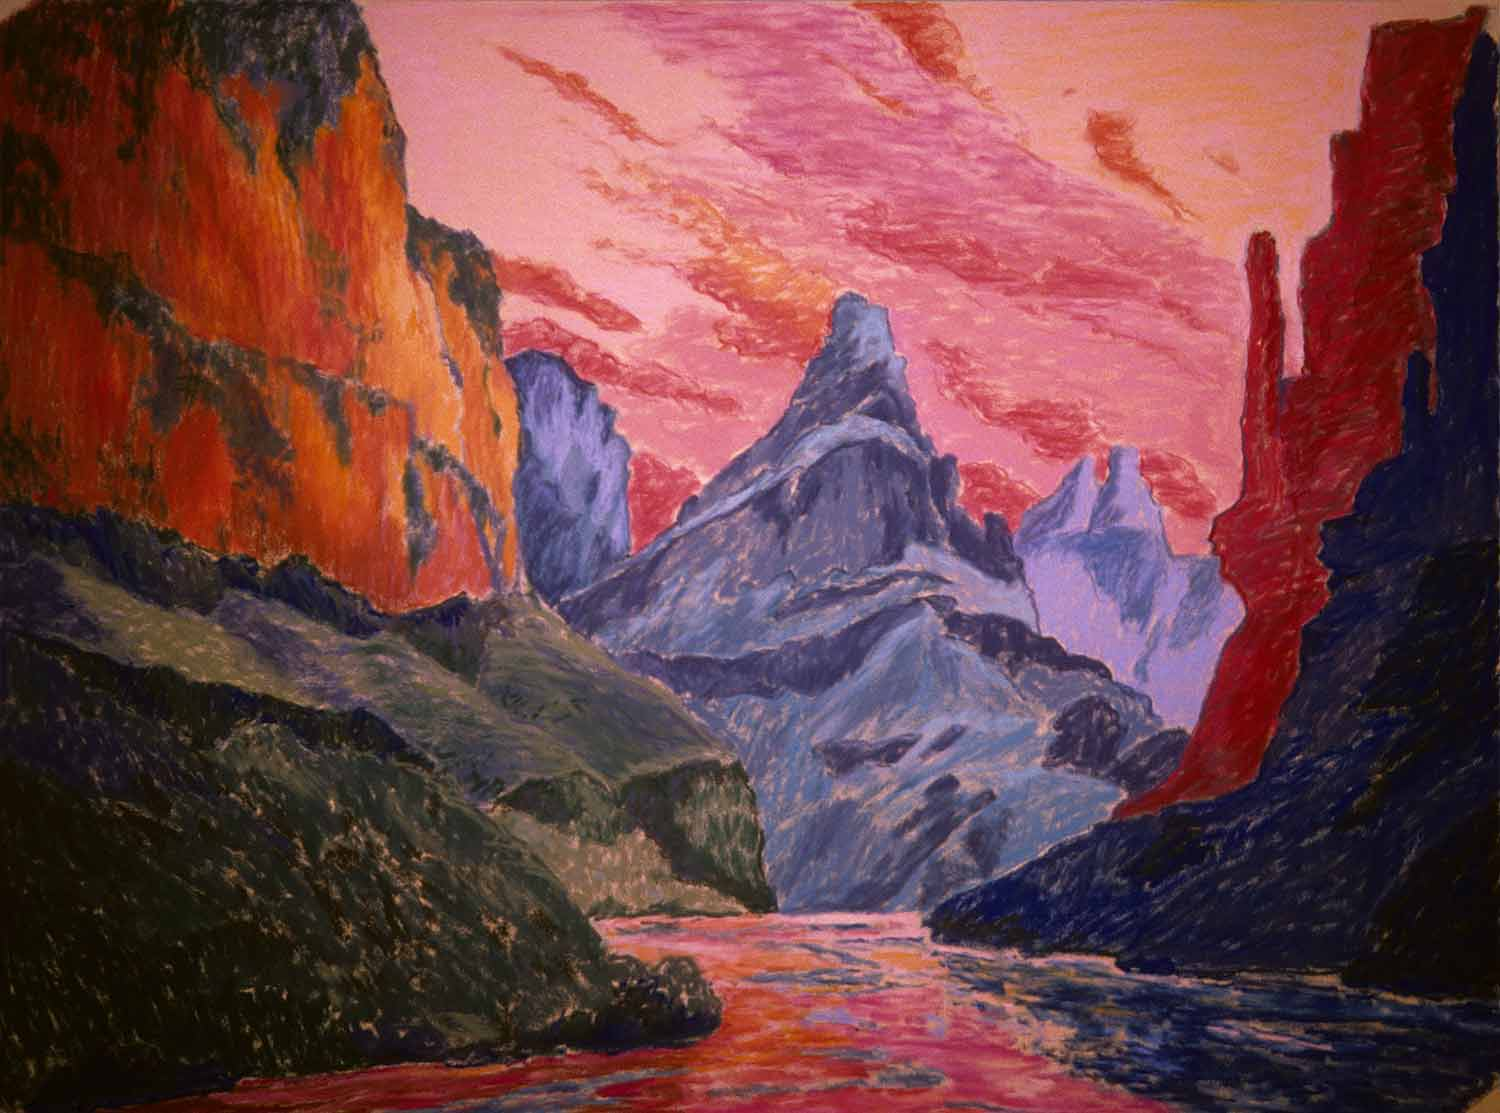 Grand Canyon #14, Oil pastel on paper by Mary Alice Copp